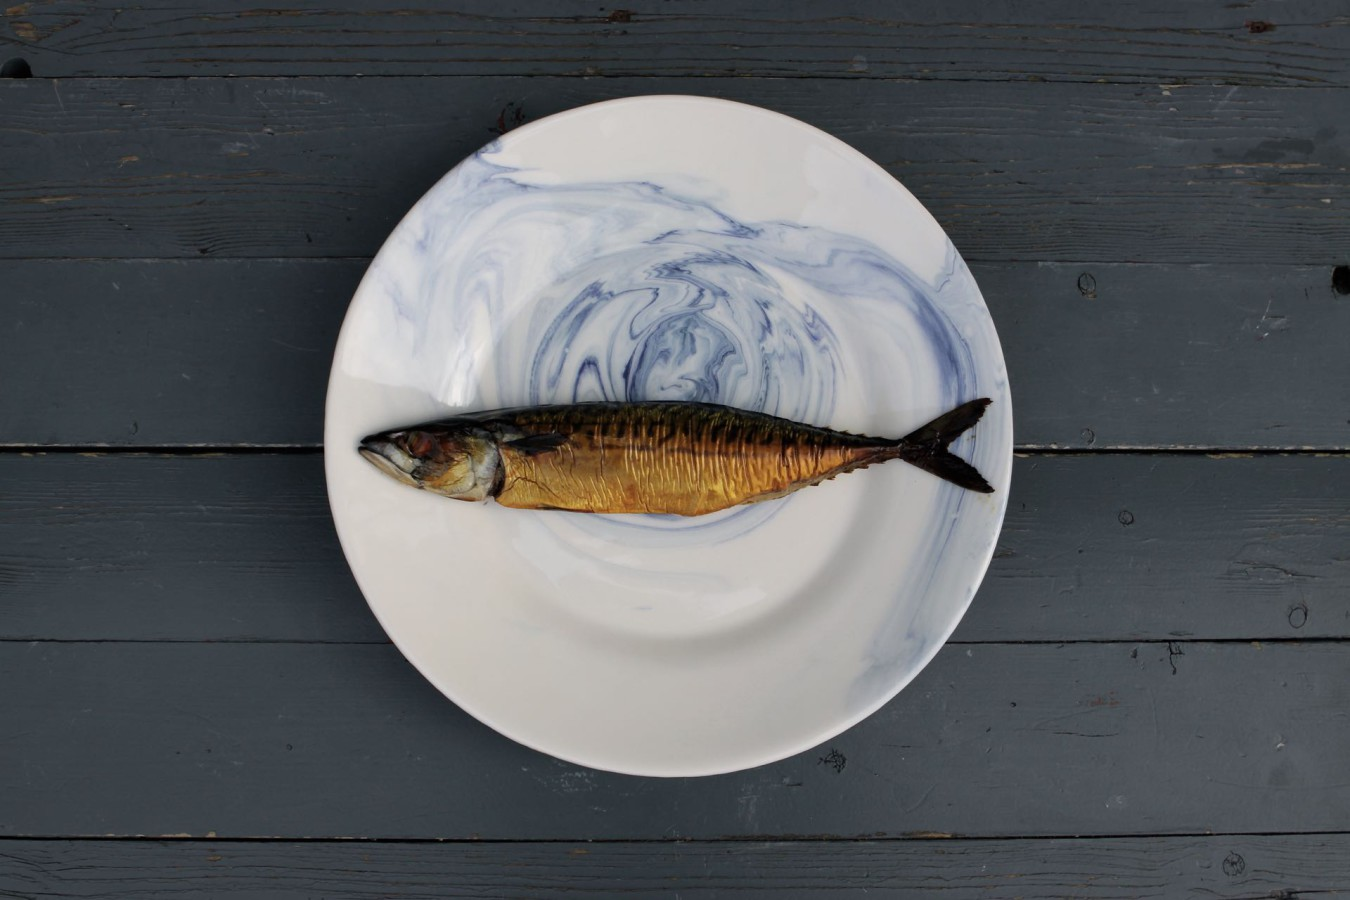 Starstruck with this beautiful plate (and clever product photography!), for sale on all-es.nl